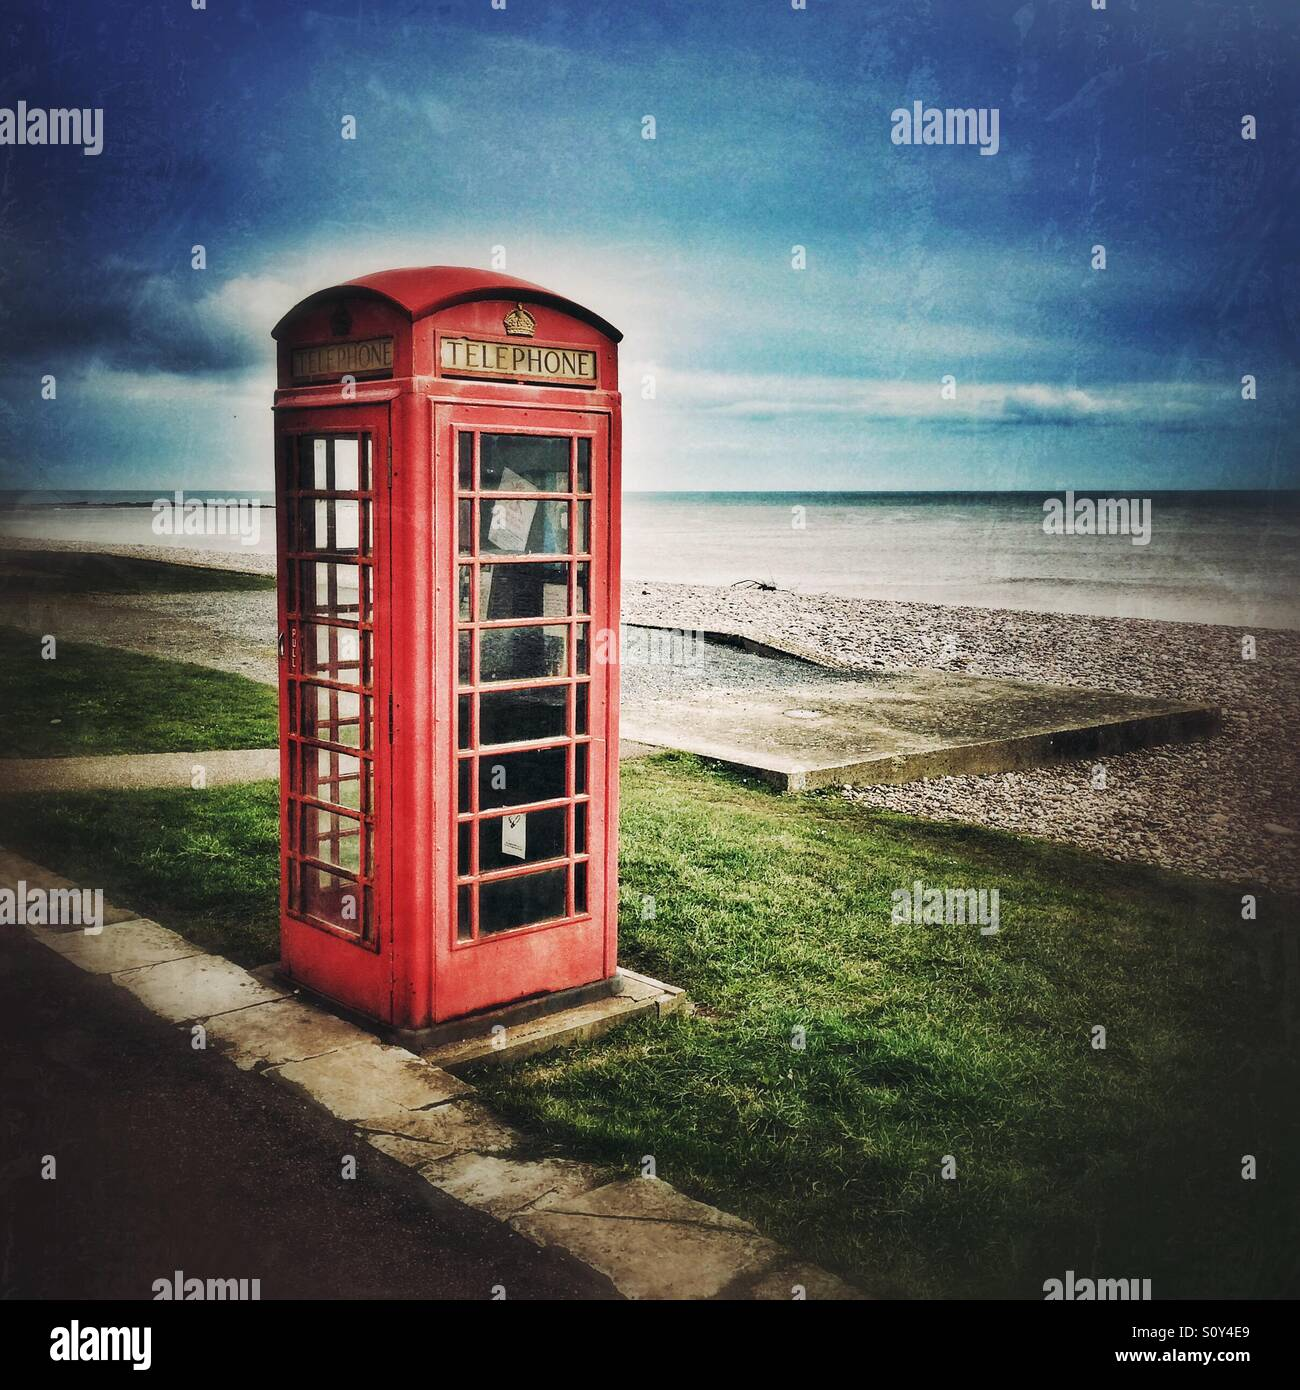 A red telephone box by the sea - Stock Image